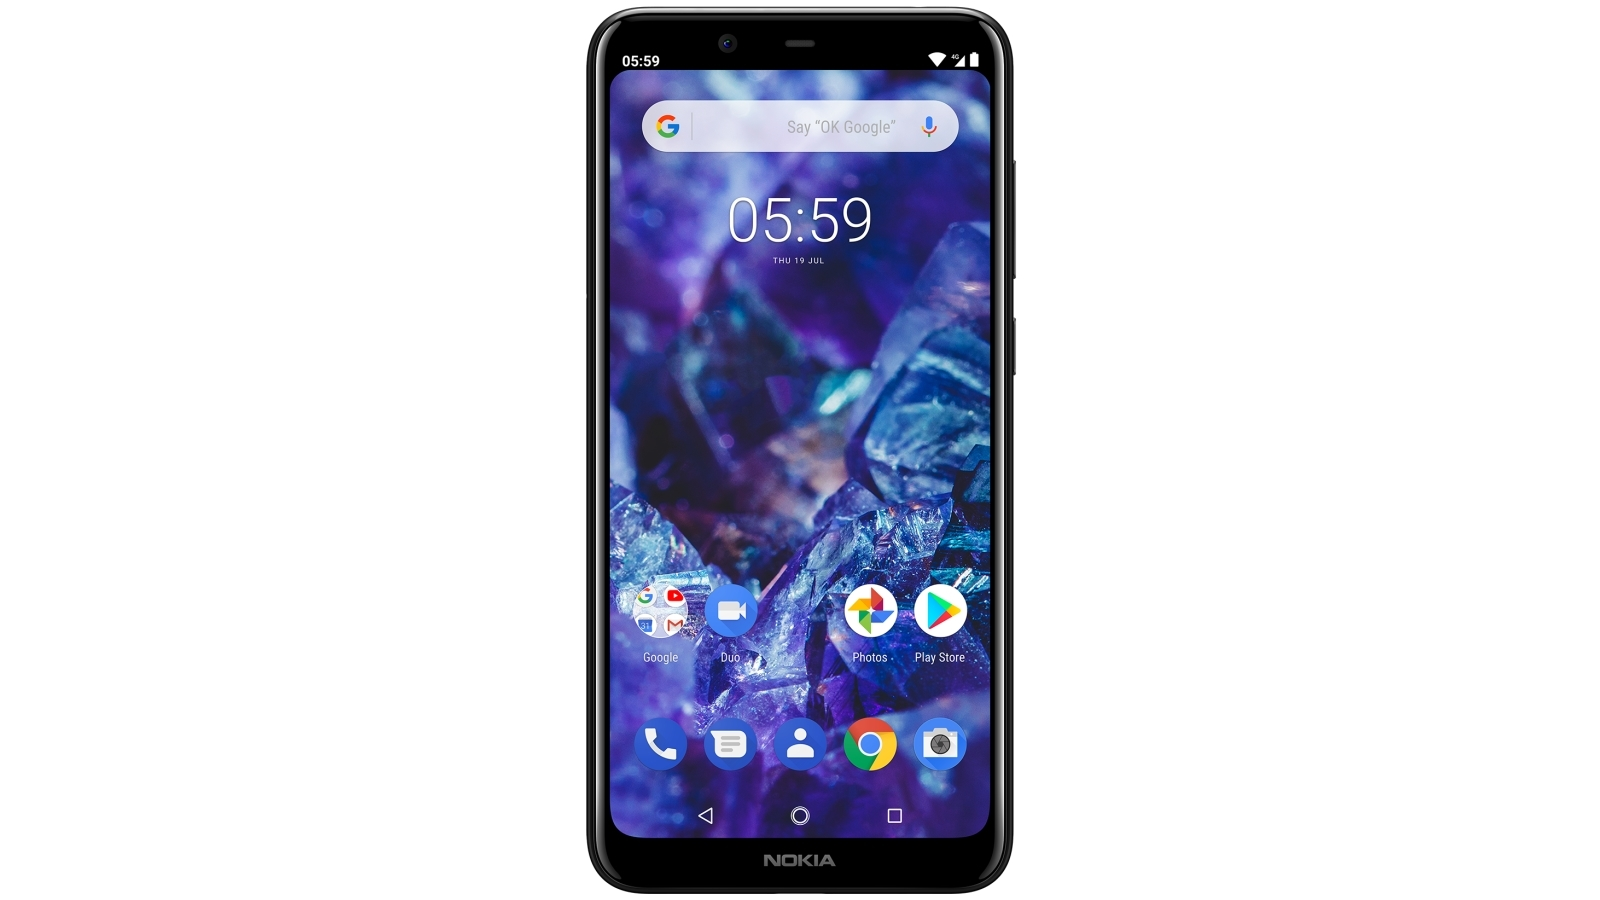 Nokia 5 1 Plus 32GB with Android One - Black